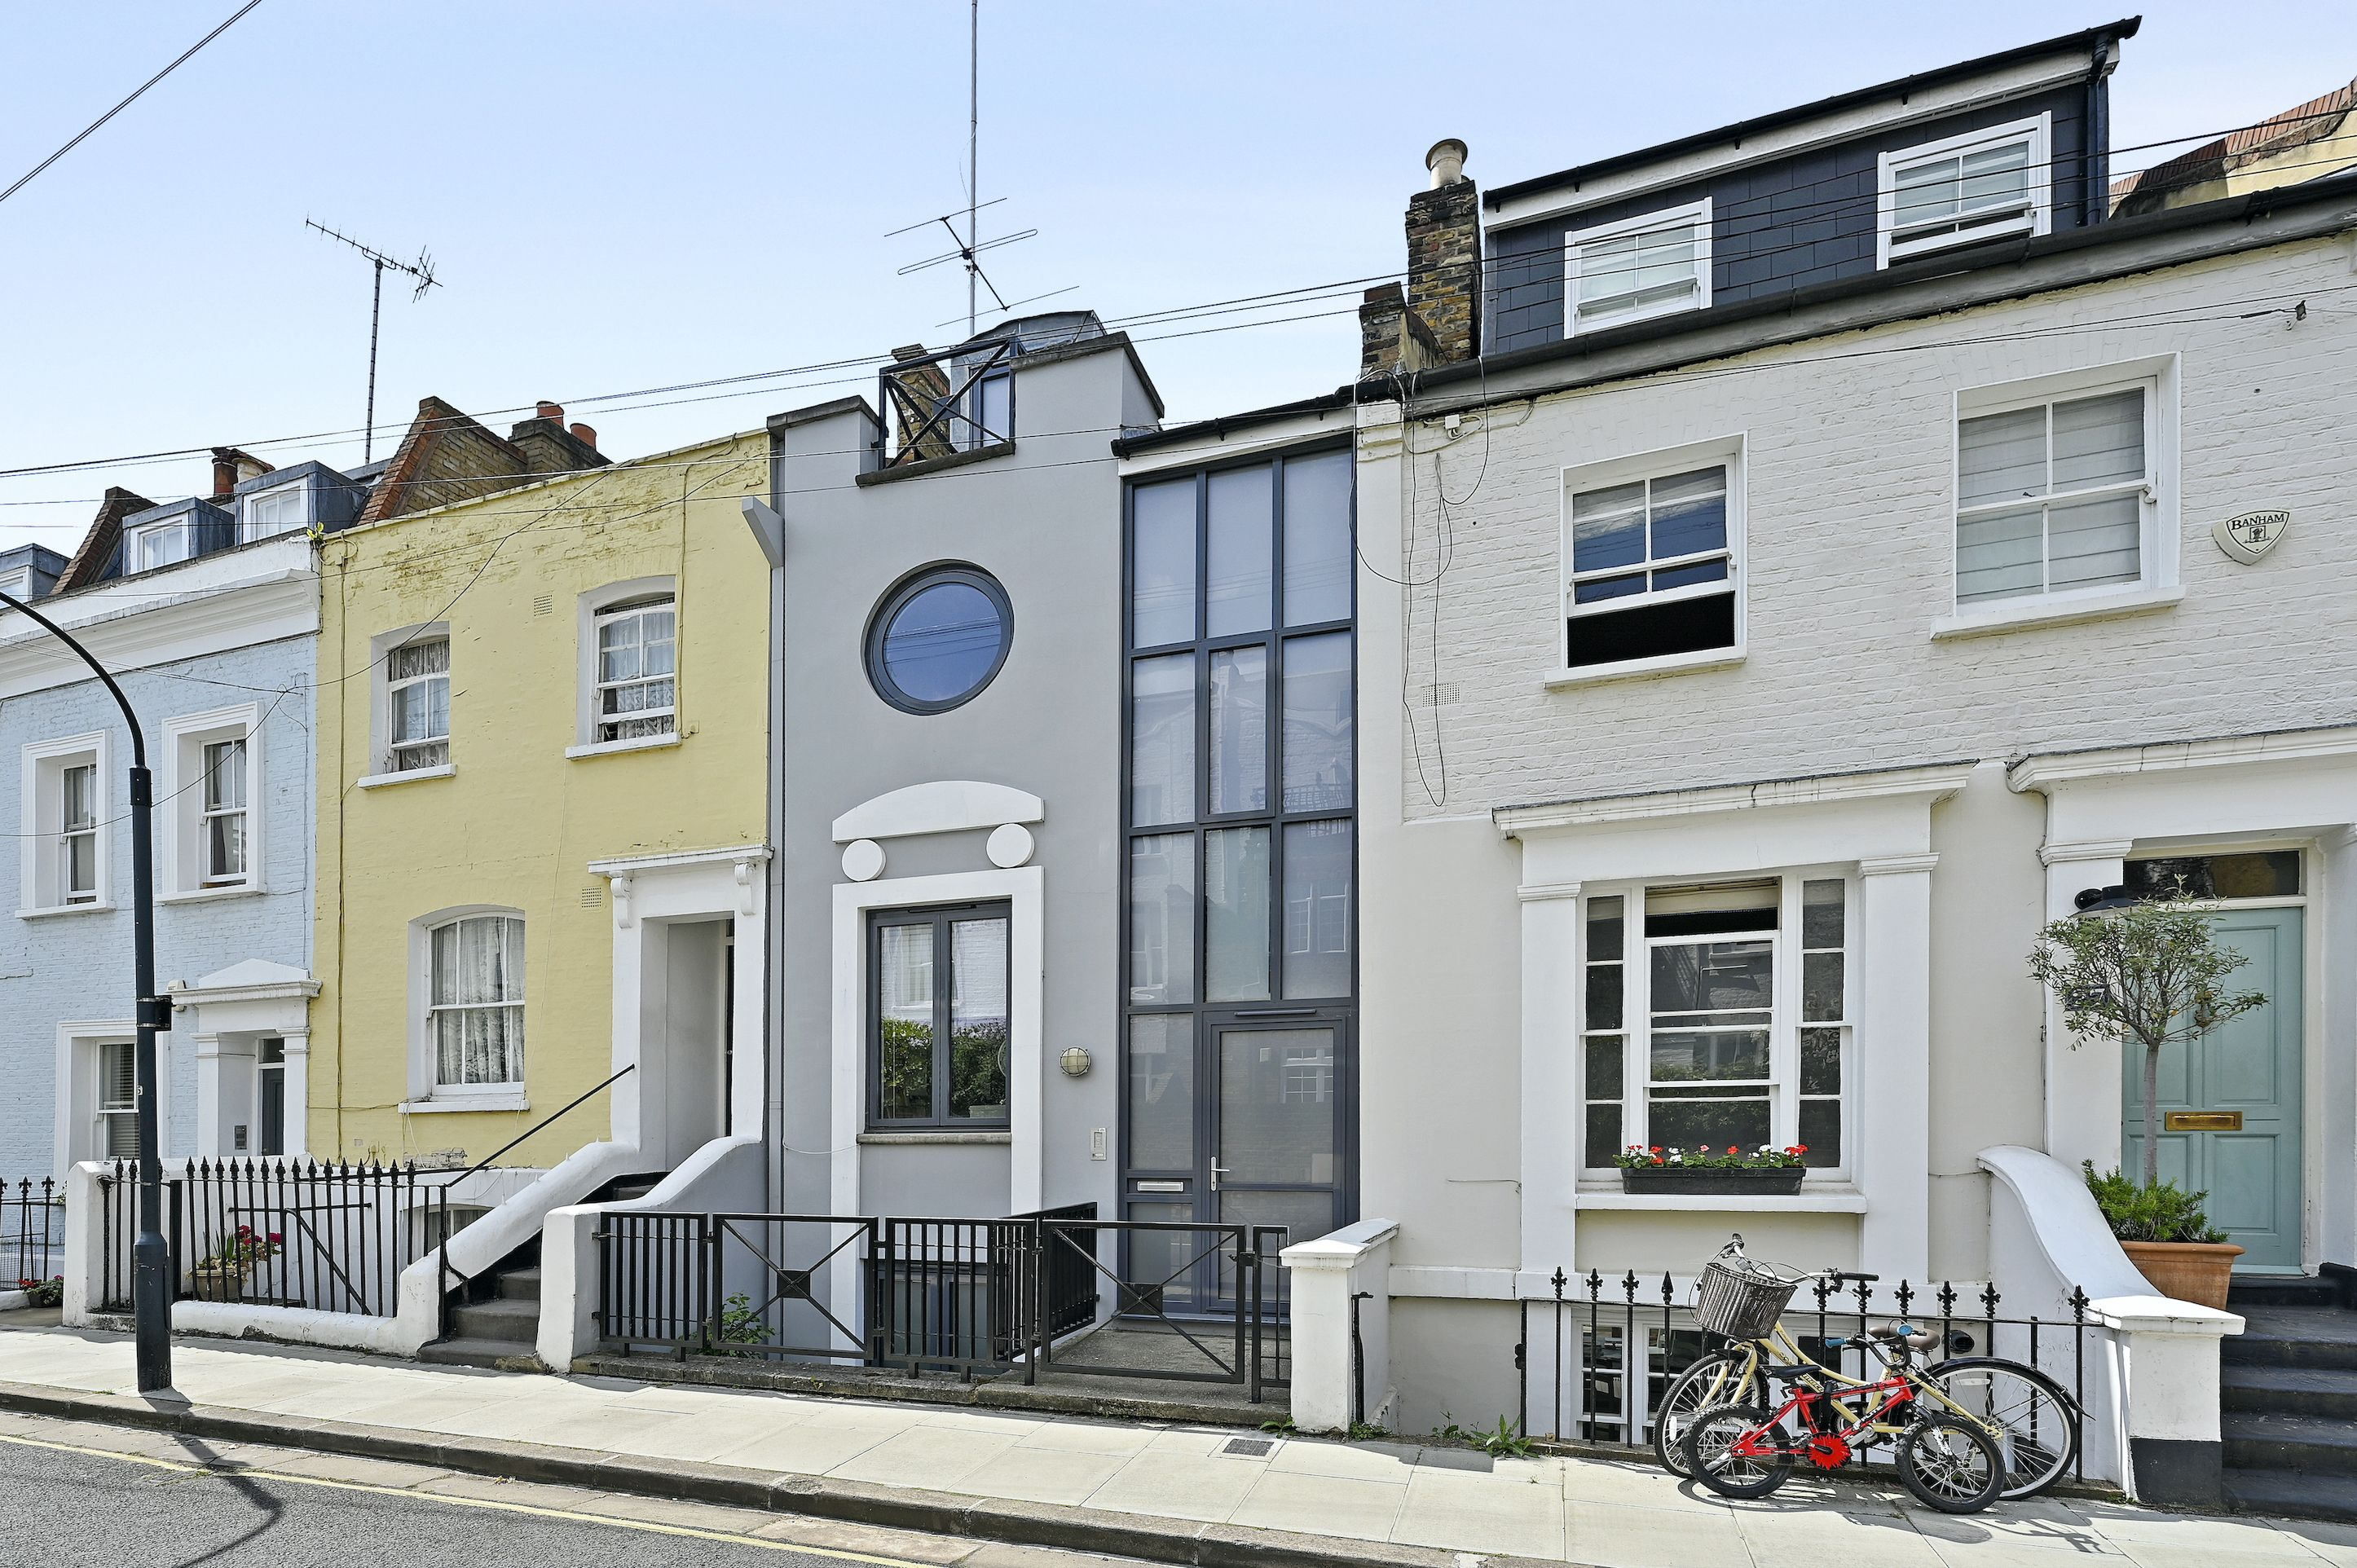 This narrow London home for sale is deceptively spacious